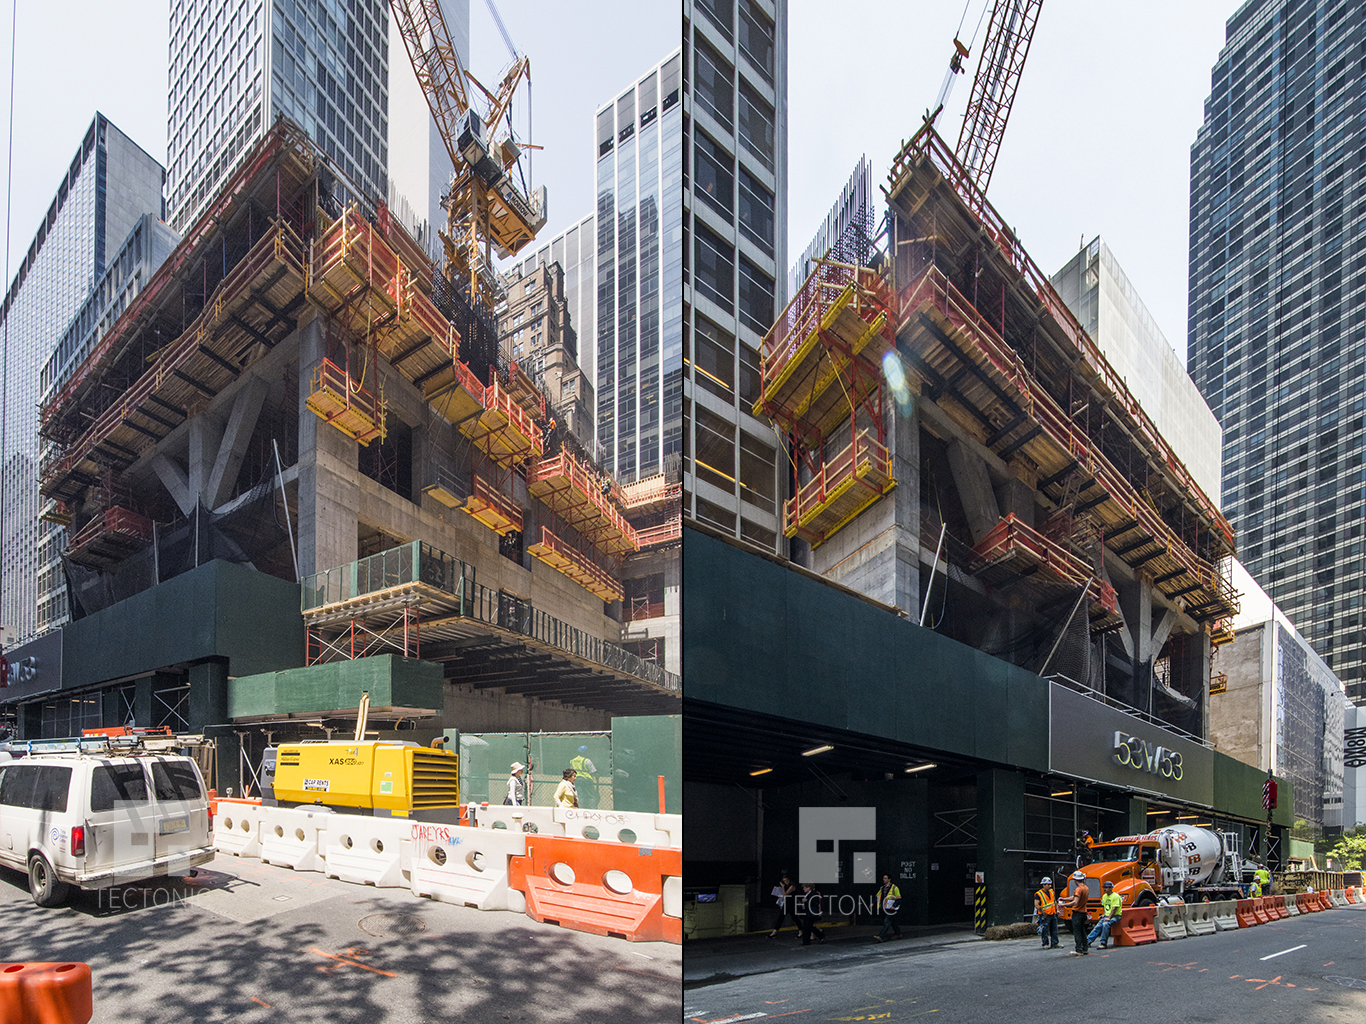 Construction at 53W53. Photos by Tectonic